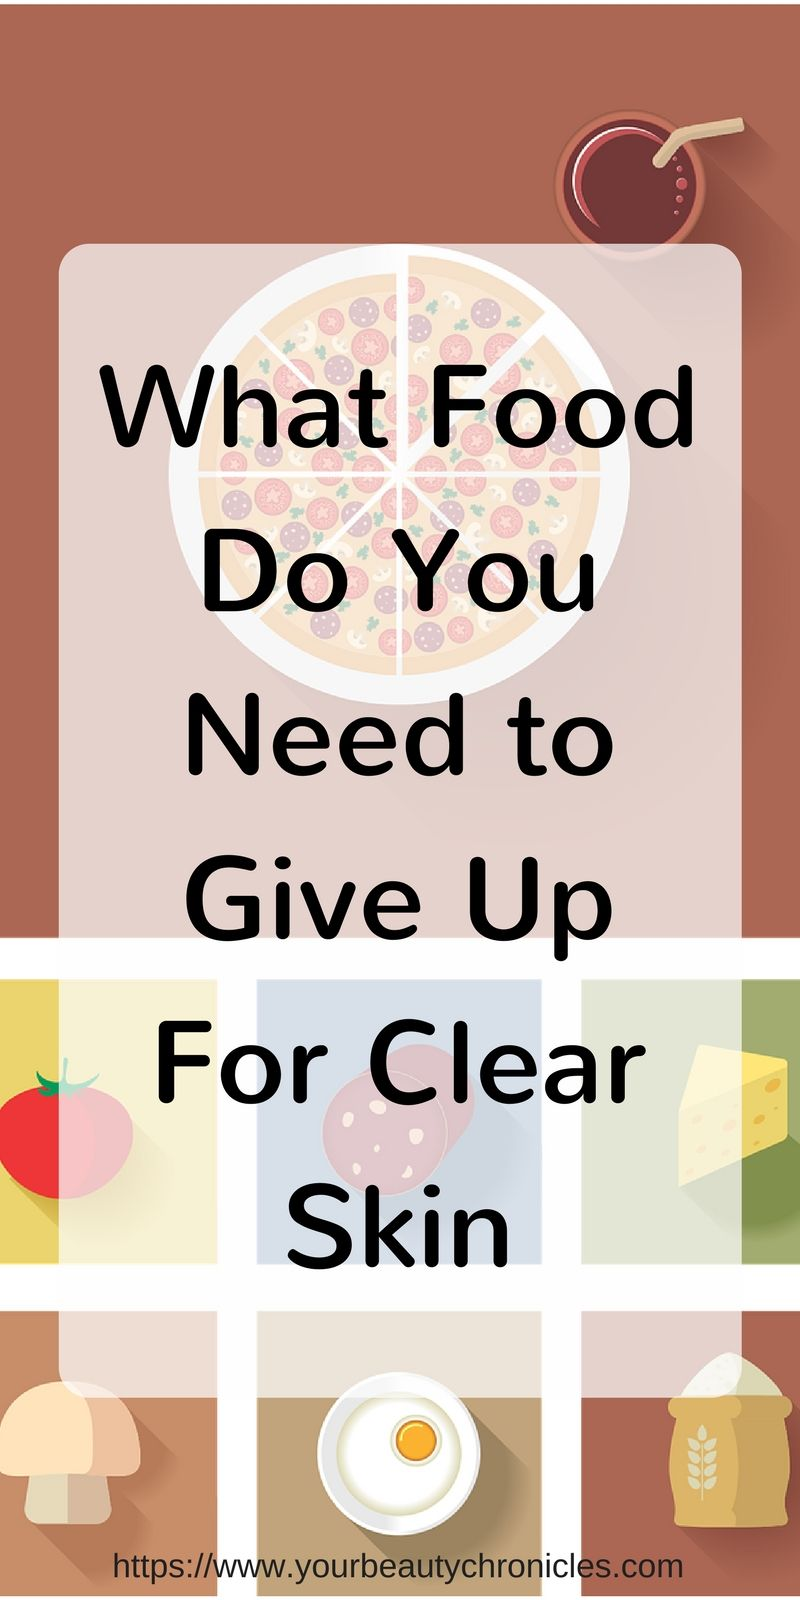 What Food Do You Need to Give Up for Clear Skin